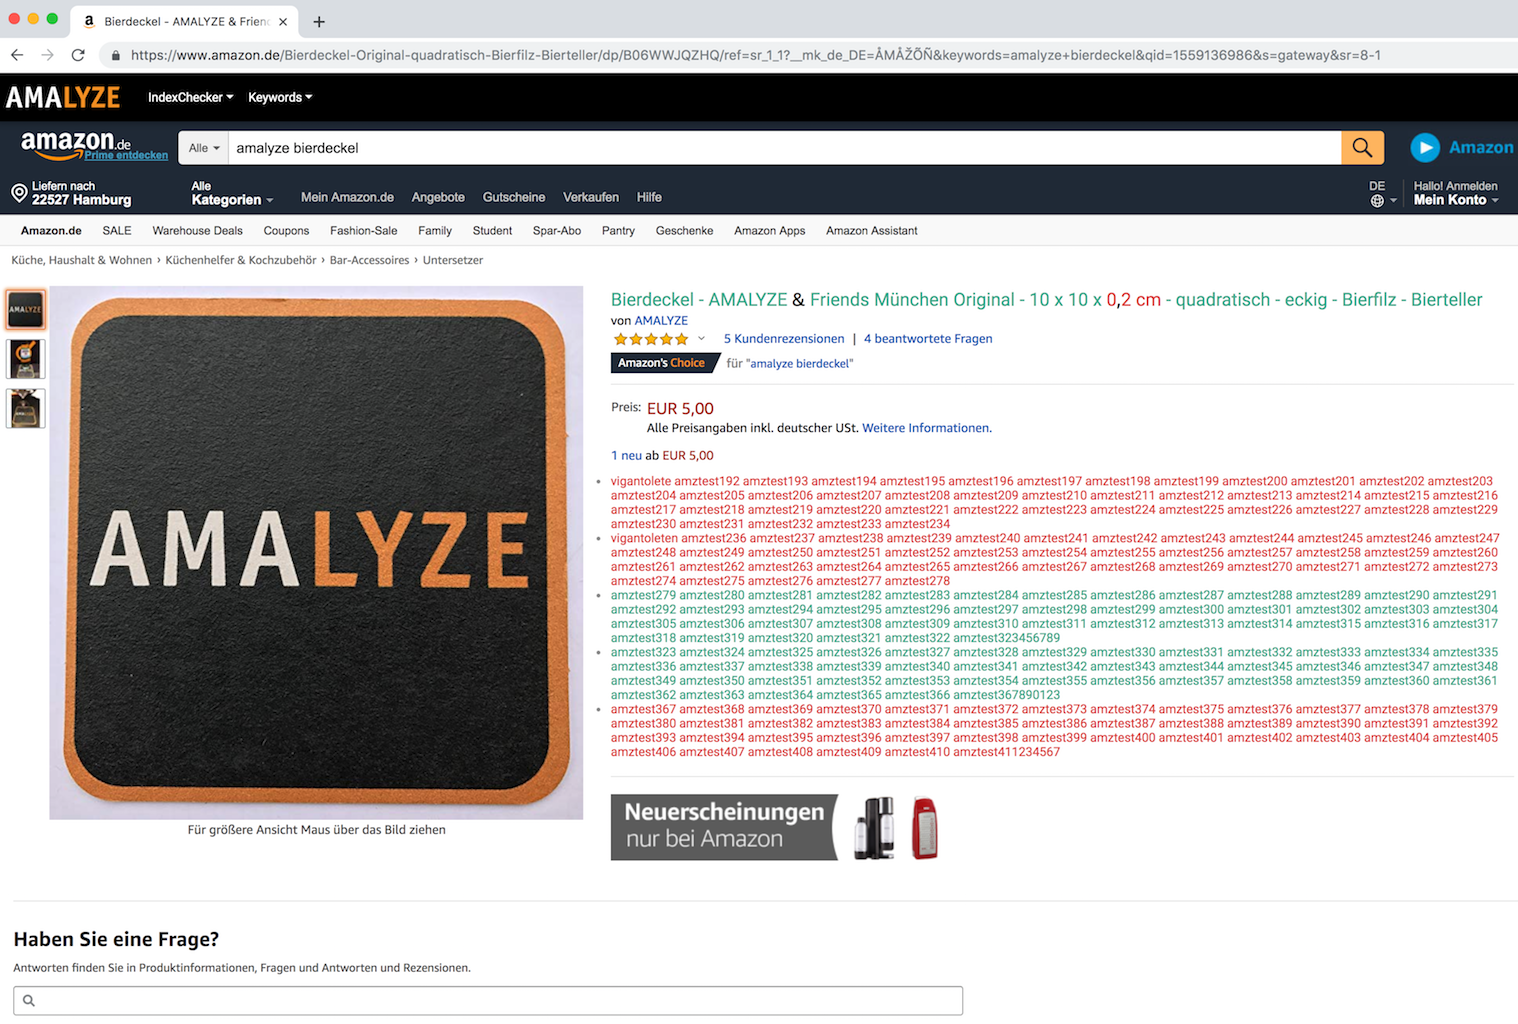 AMALYZE Chrome Extension_kostenloses Amazon Tool ASIN Onpage Index Check